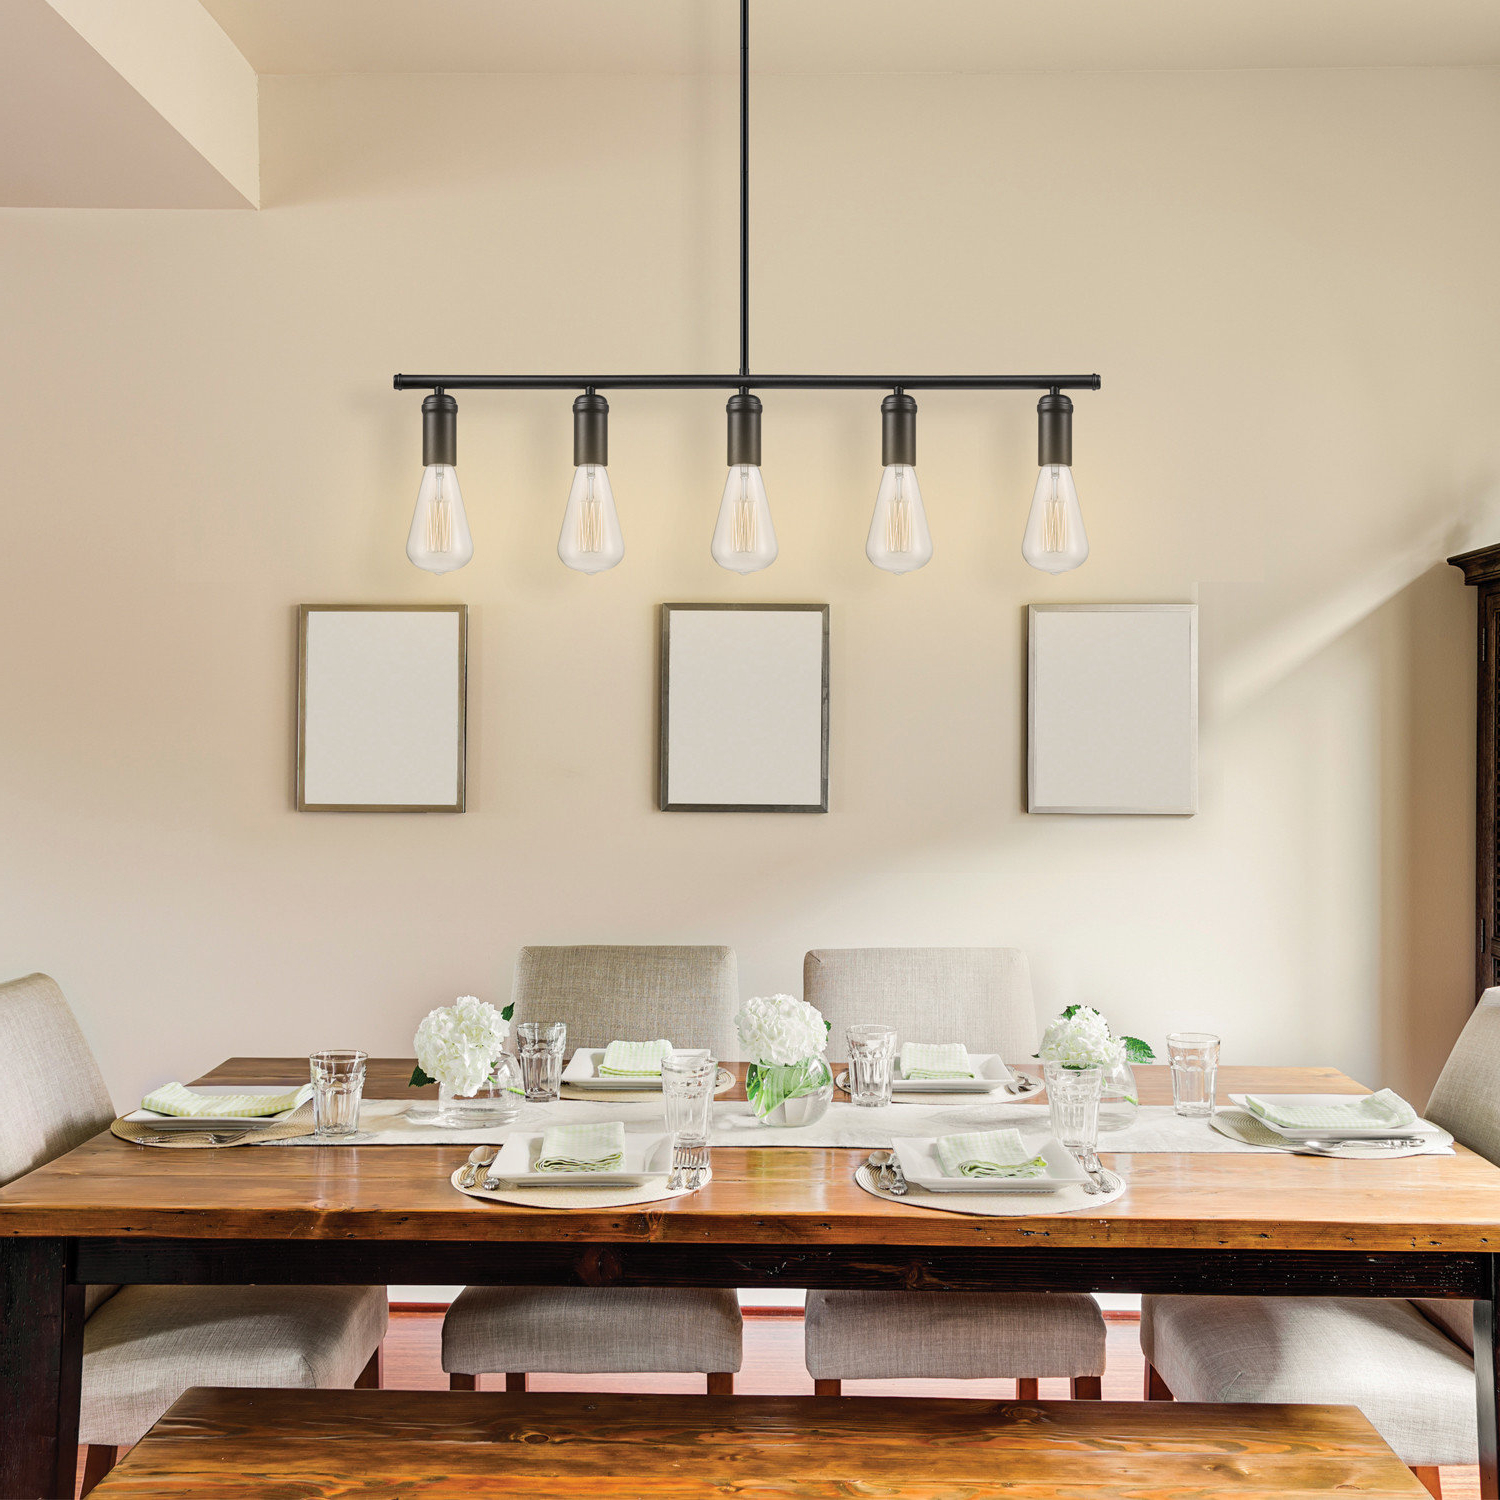 Hinerman 5 Light Kitchen Island Pendants For Popular 4 – 6 Light Black Pendant Lighting You'll Love In (View 16 of 25)